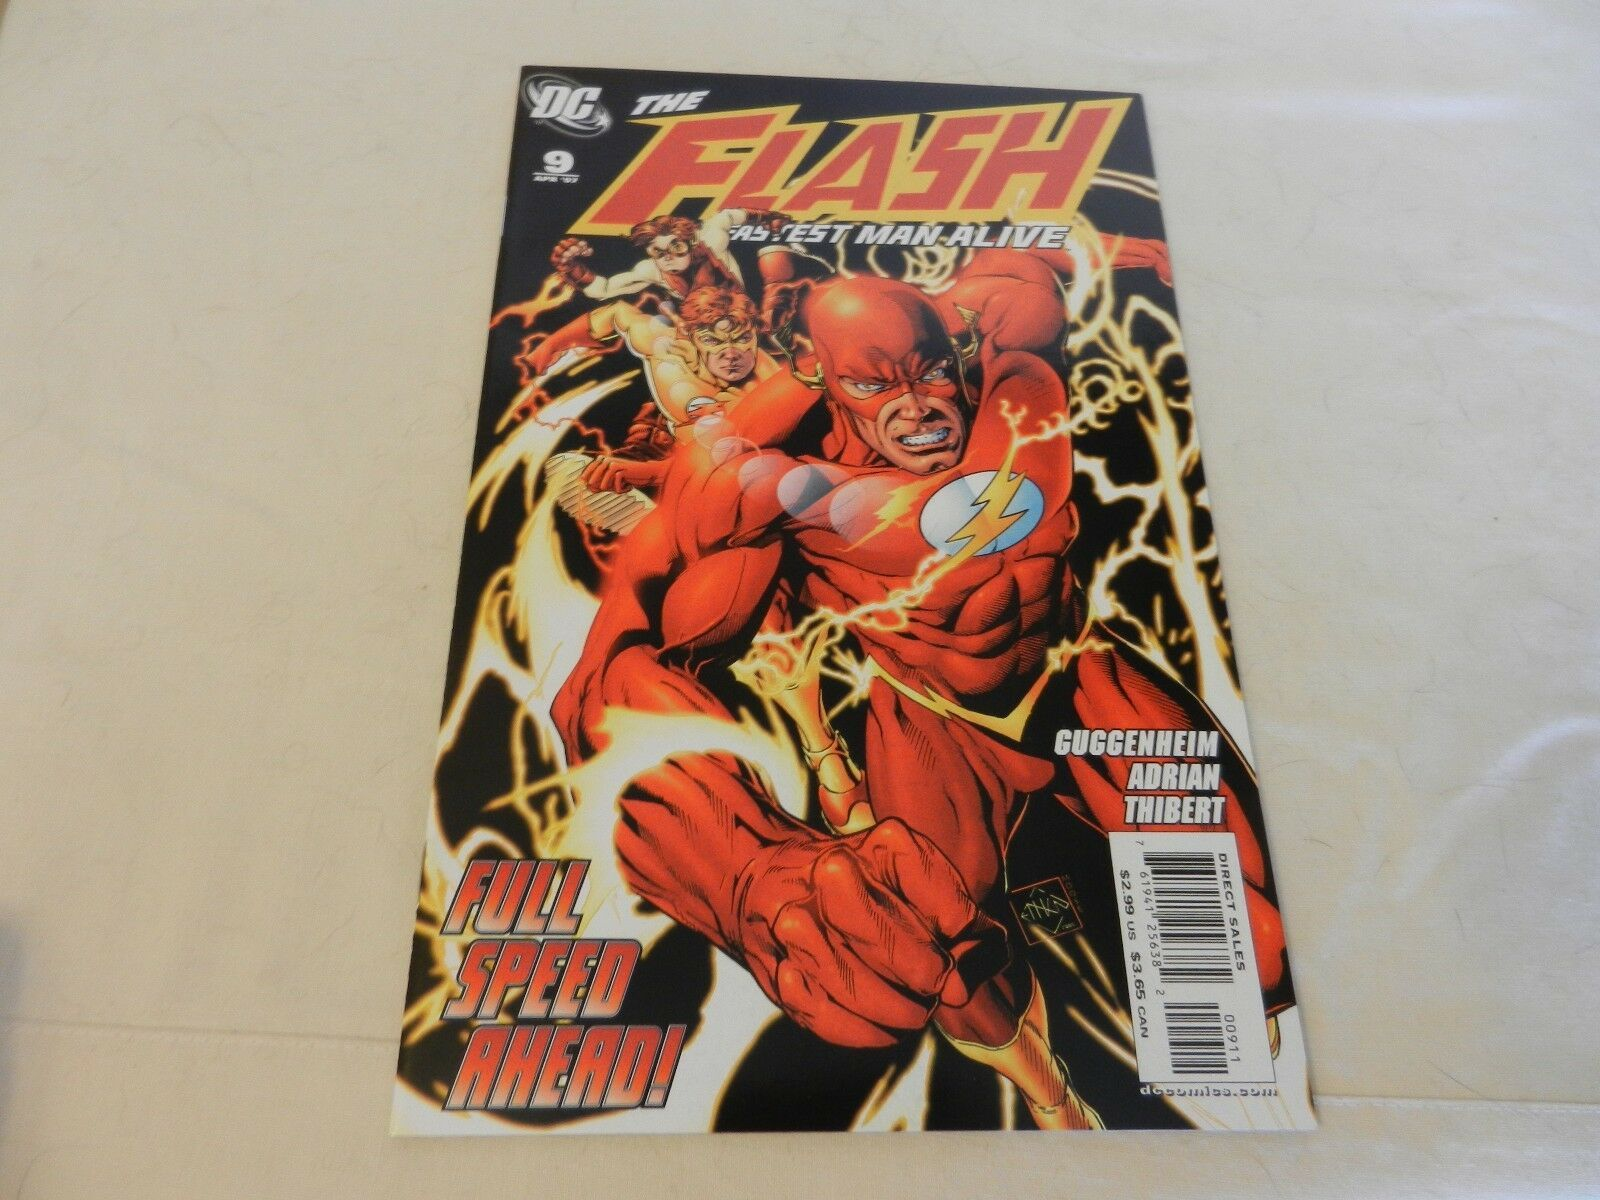 The Flash The Fastest Man Alive Full Speed Ahead! DC Comics #9 April 2007